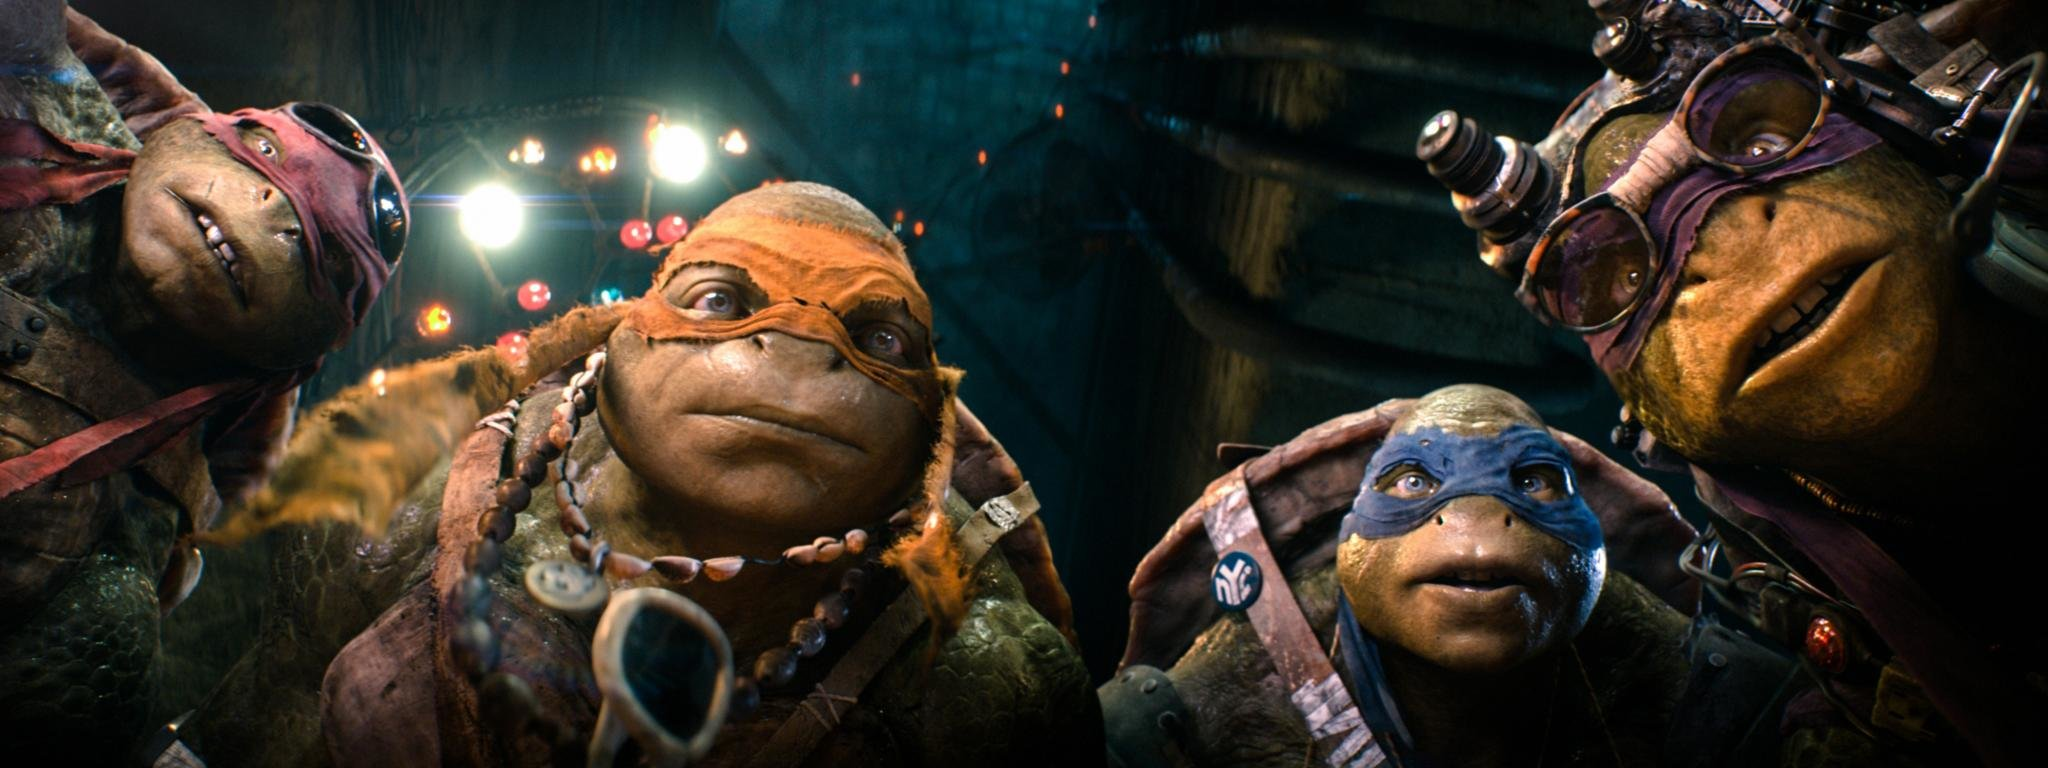 High resolution Teenage Mutant Ninja Turtles (2014) TMNT movie dual monitor 2048x768 wallpaper ID:234178 for PC